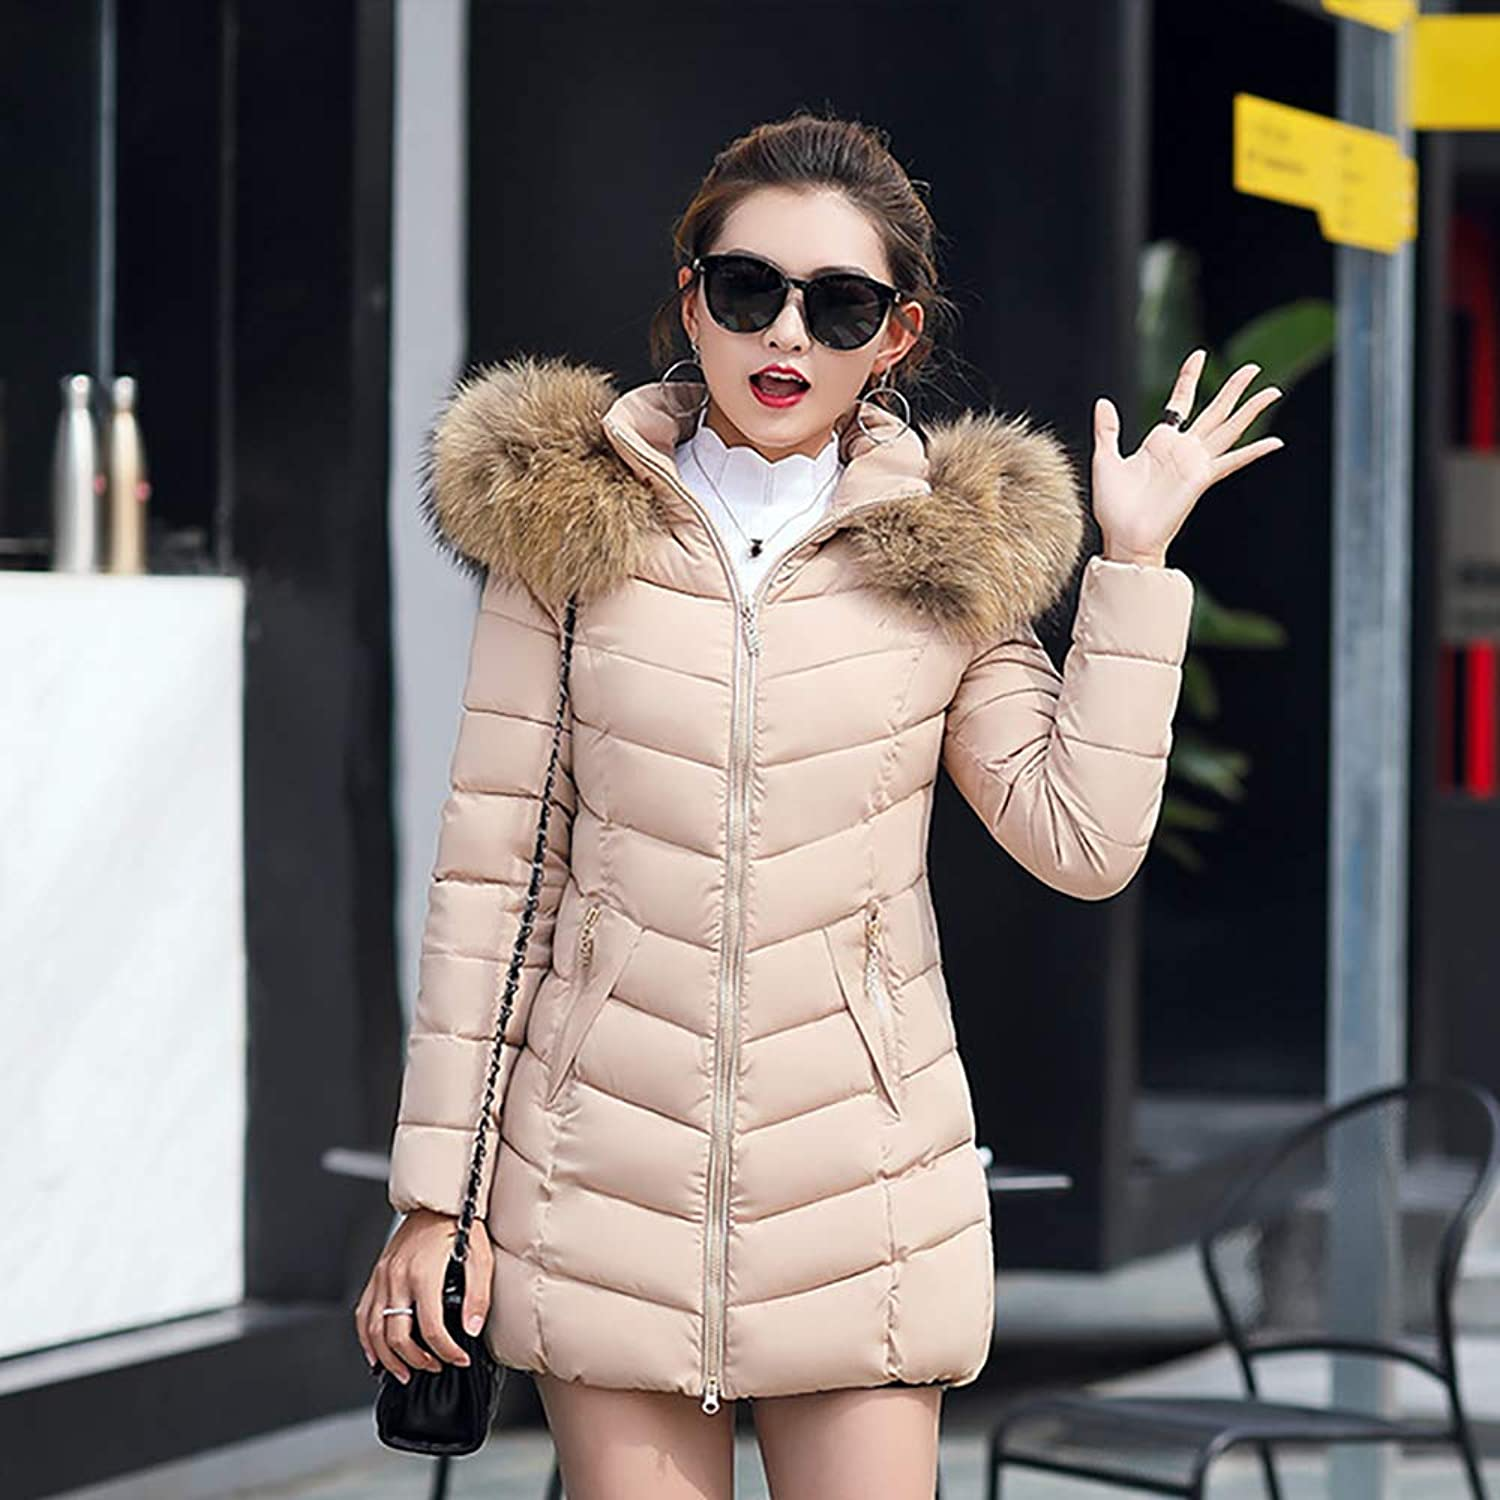 Winter Women's Warm Hooded Coat Long Cotton Padded Jackets, Female Medium and Long Slimming Down Jacket,D,XXL